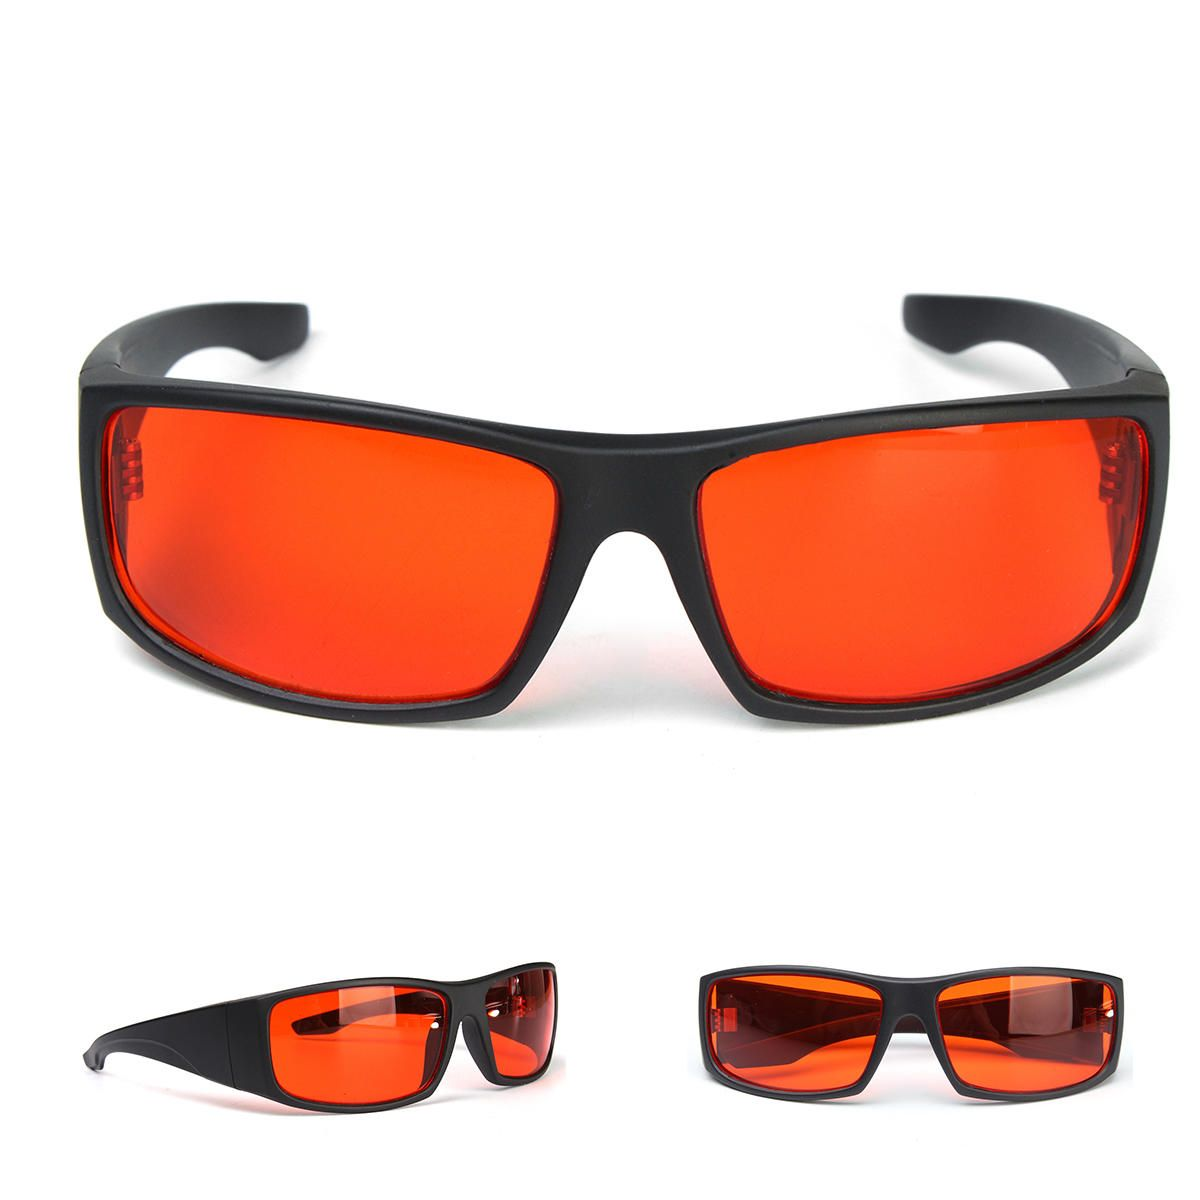 BIKIGHT Colorblindness Corrective Glasses for Red-green Color Blind ...